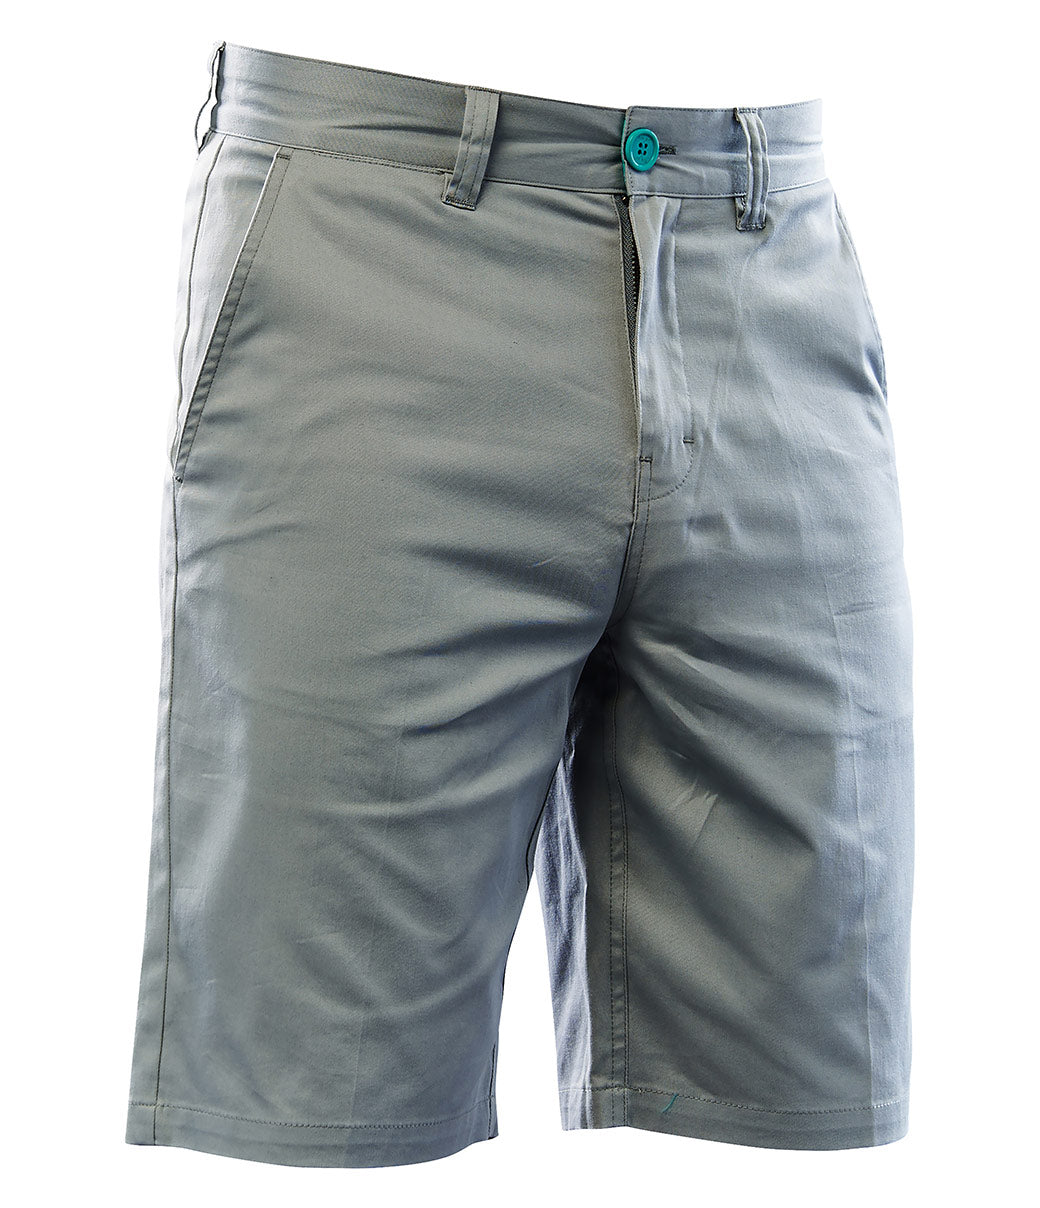 Chino Short - Gray